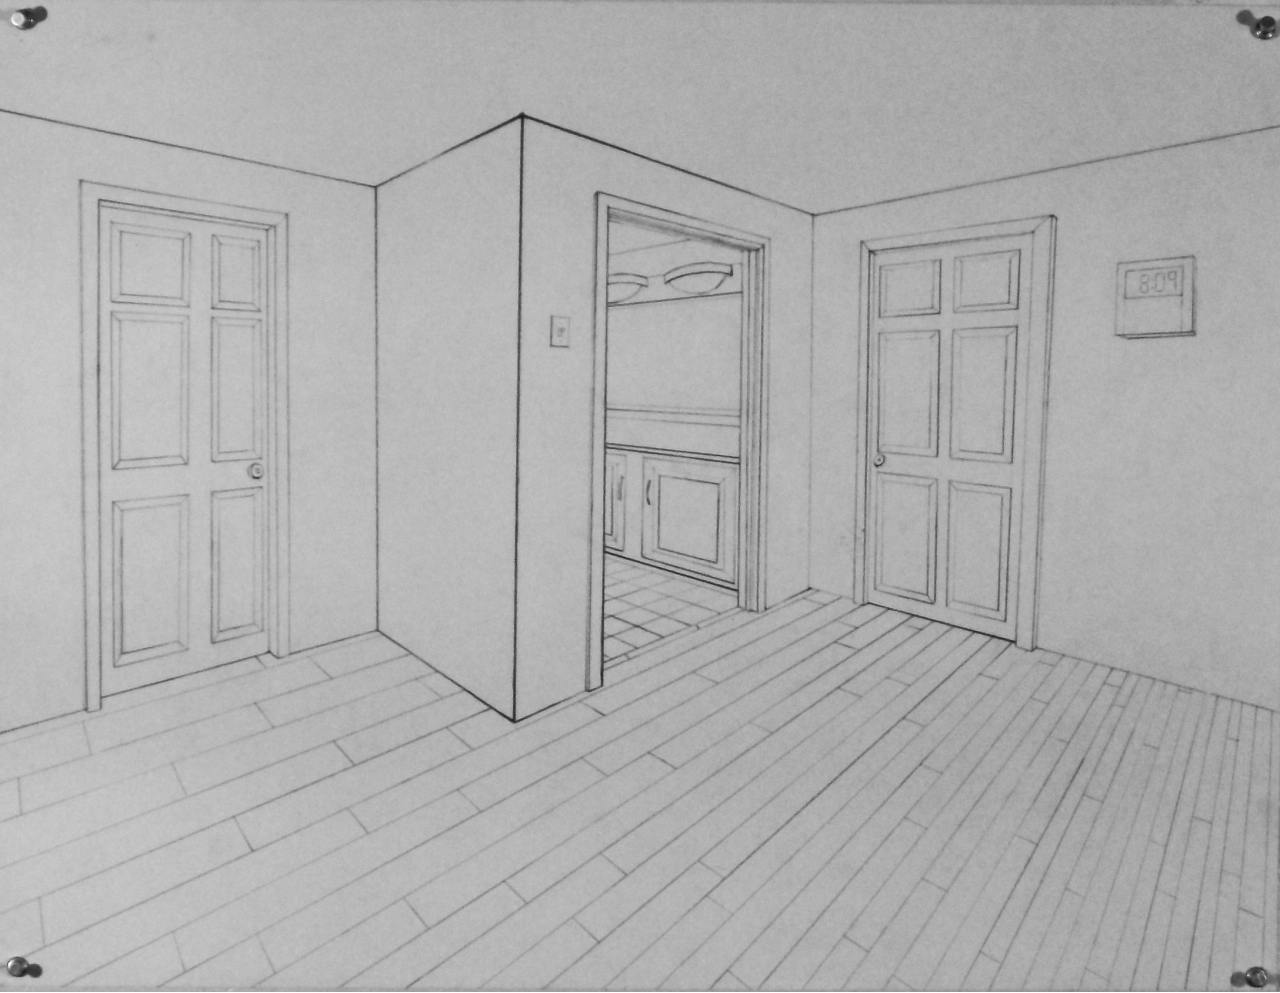 2 Point Perspective Bedroom Sketch Www Pixshark Com